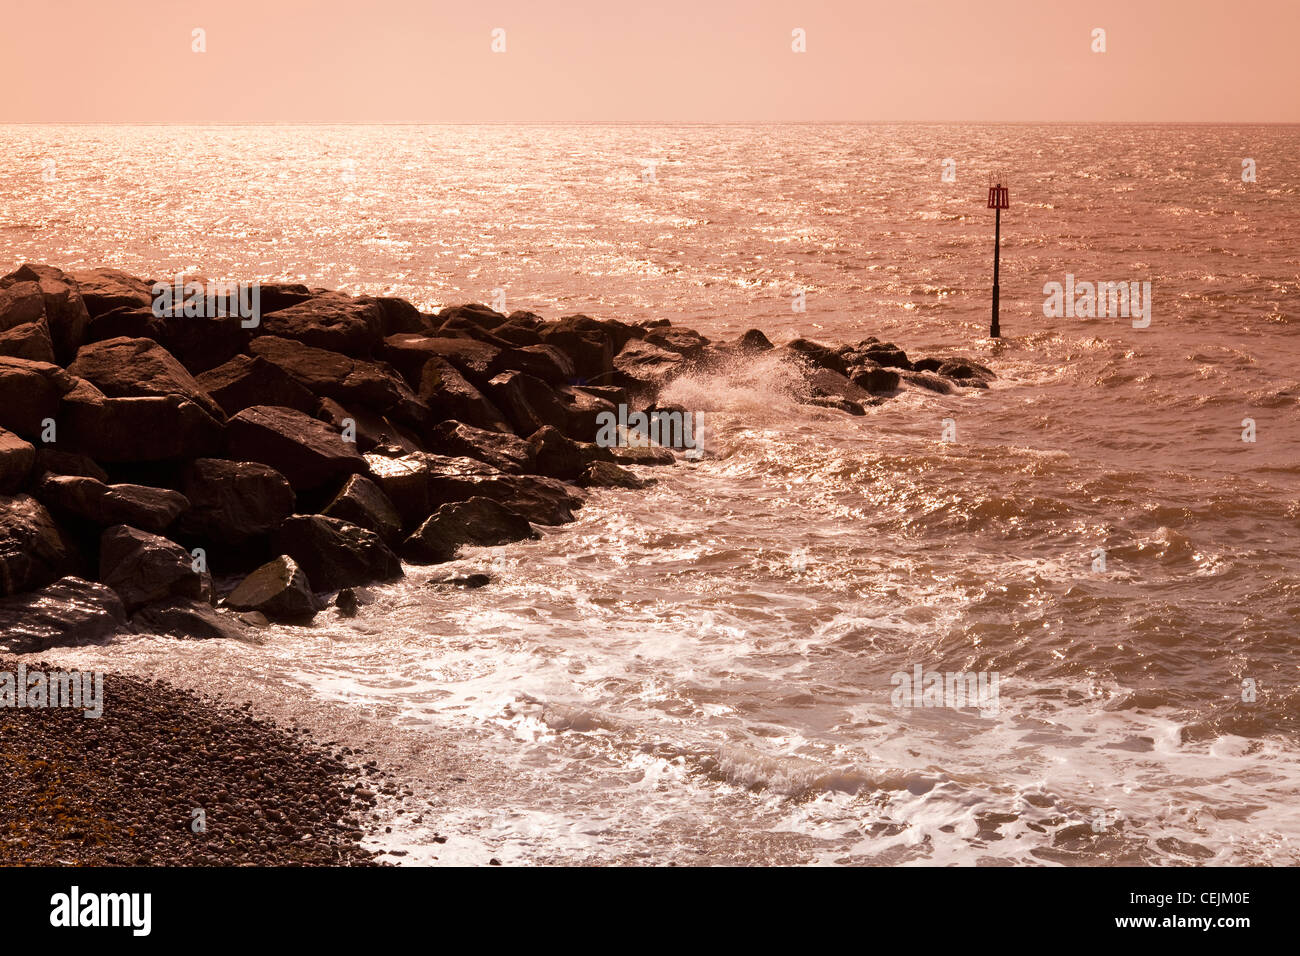 England Devon Sidmouth Seafront with rocks and crashing waves - Stock Image